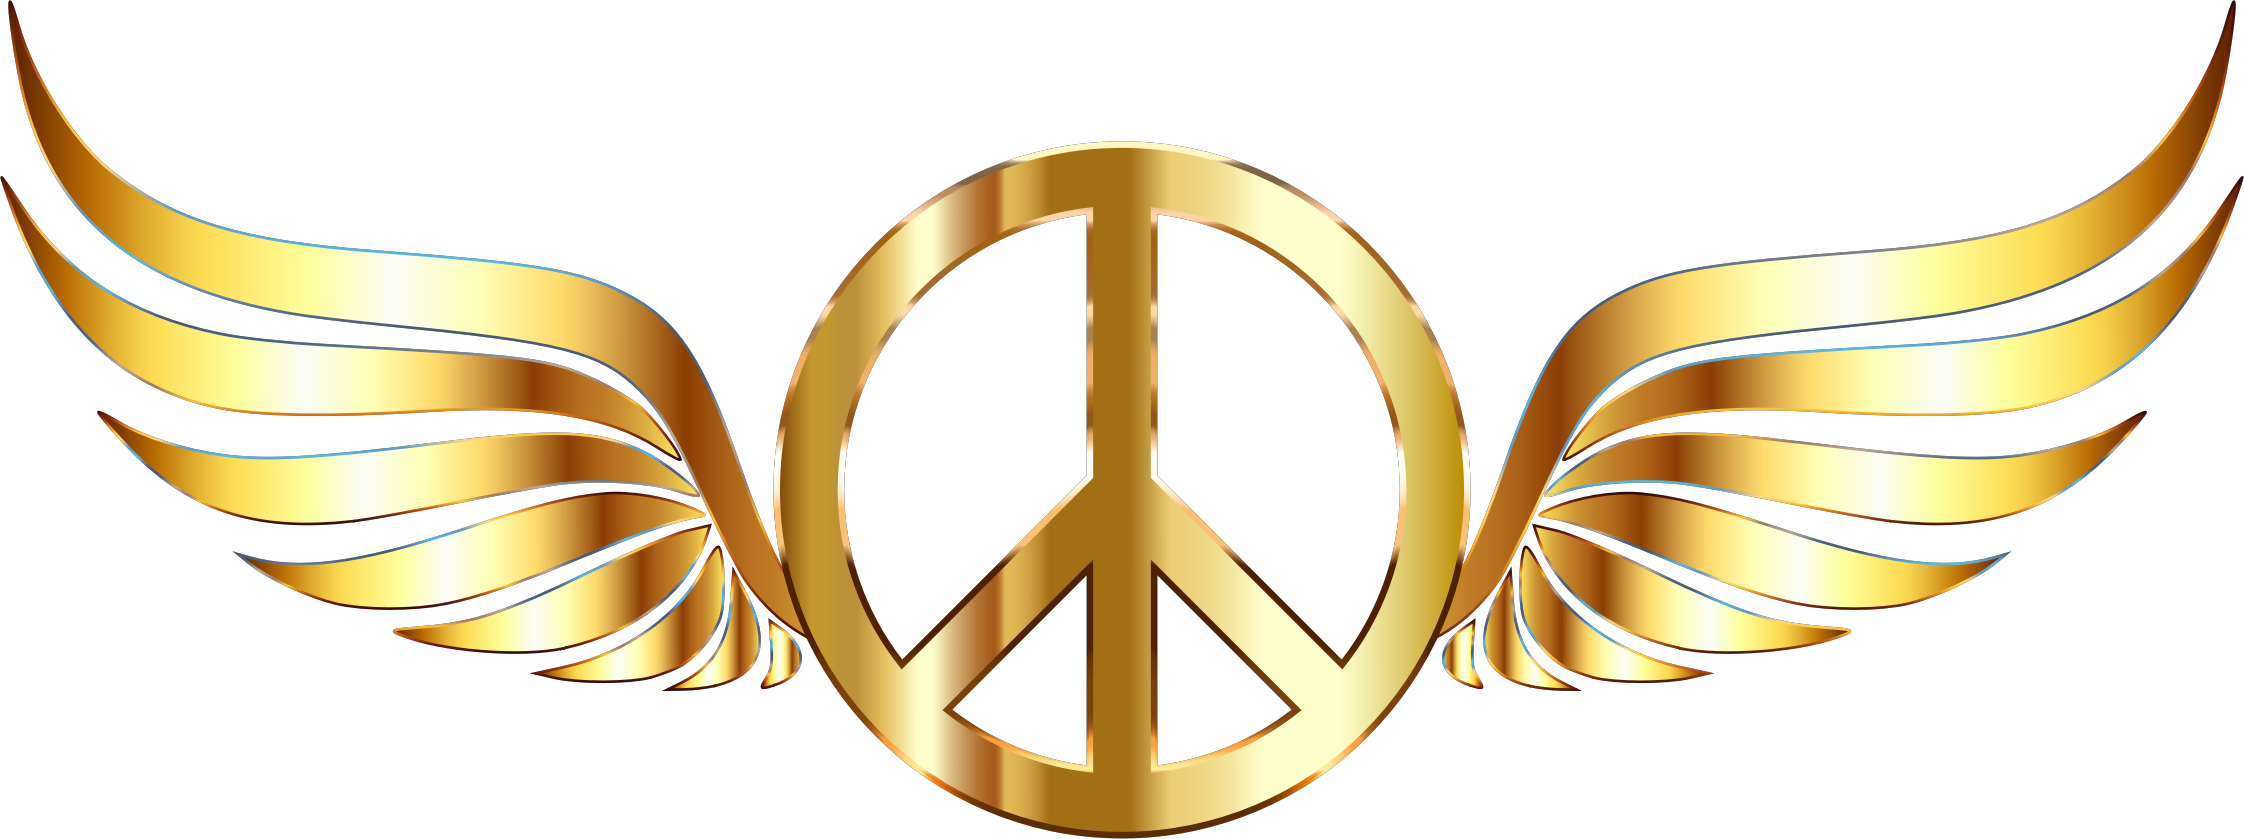 Peace Sign clipart yellow Gold Clipart Background Sign Sign